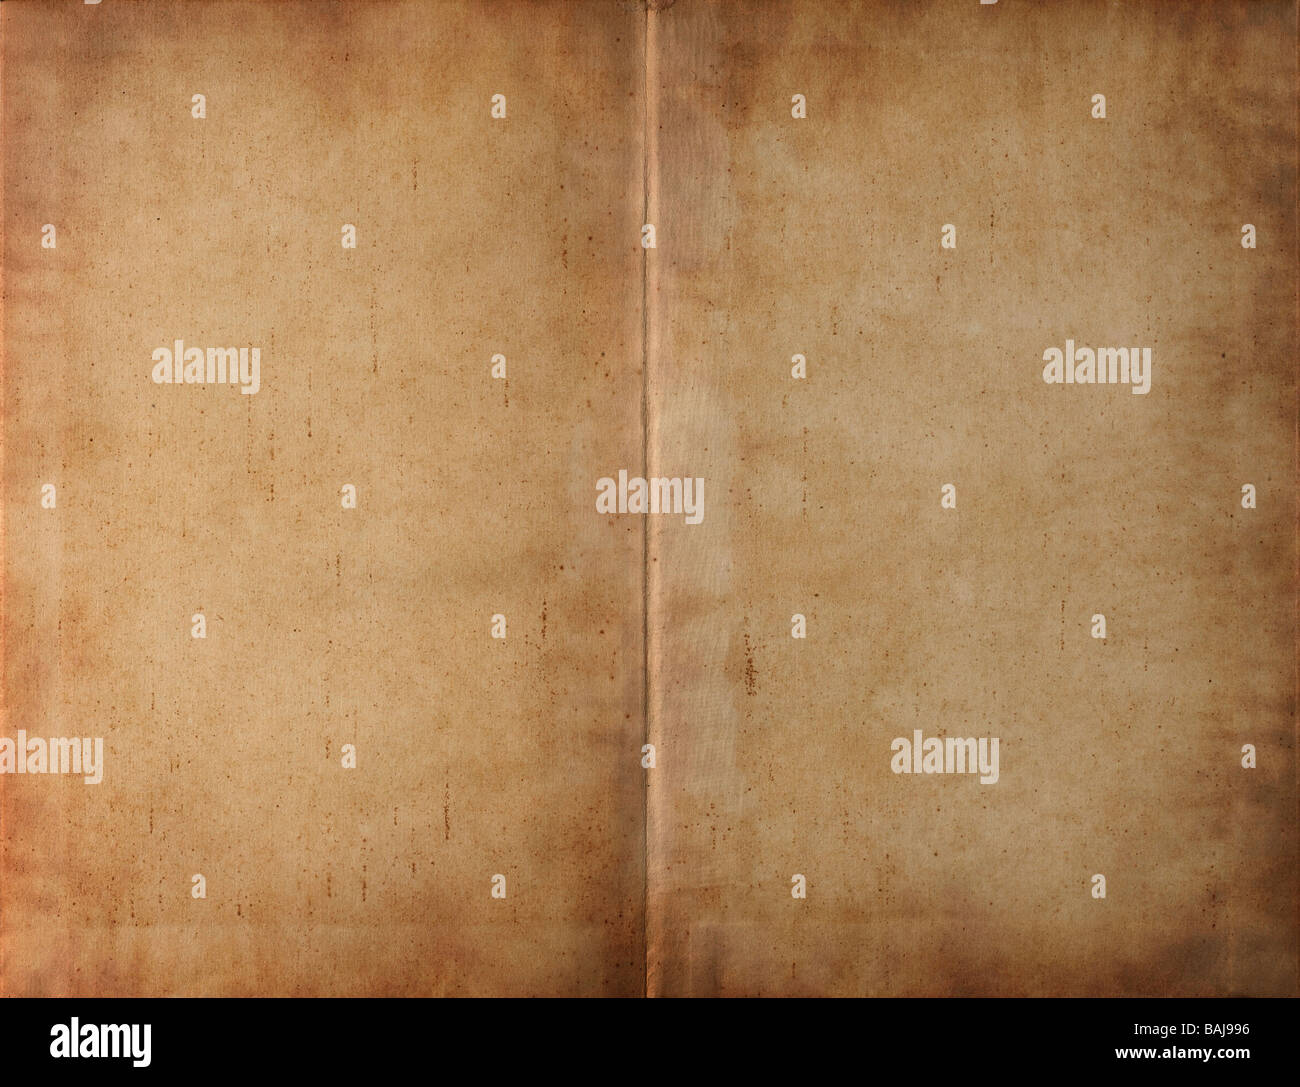 Old paper background - Stock Image